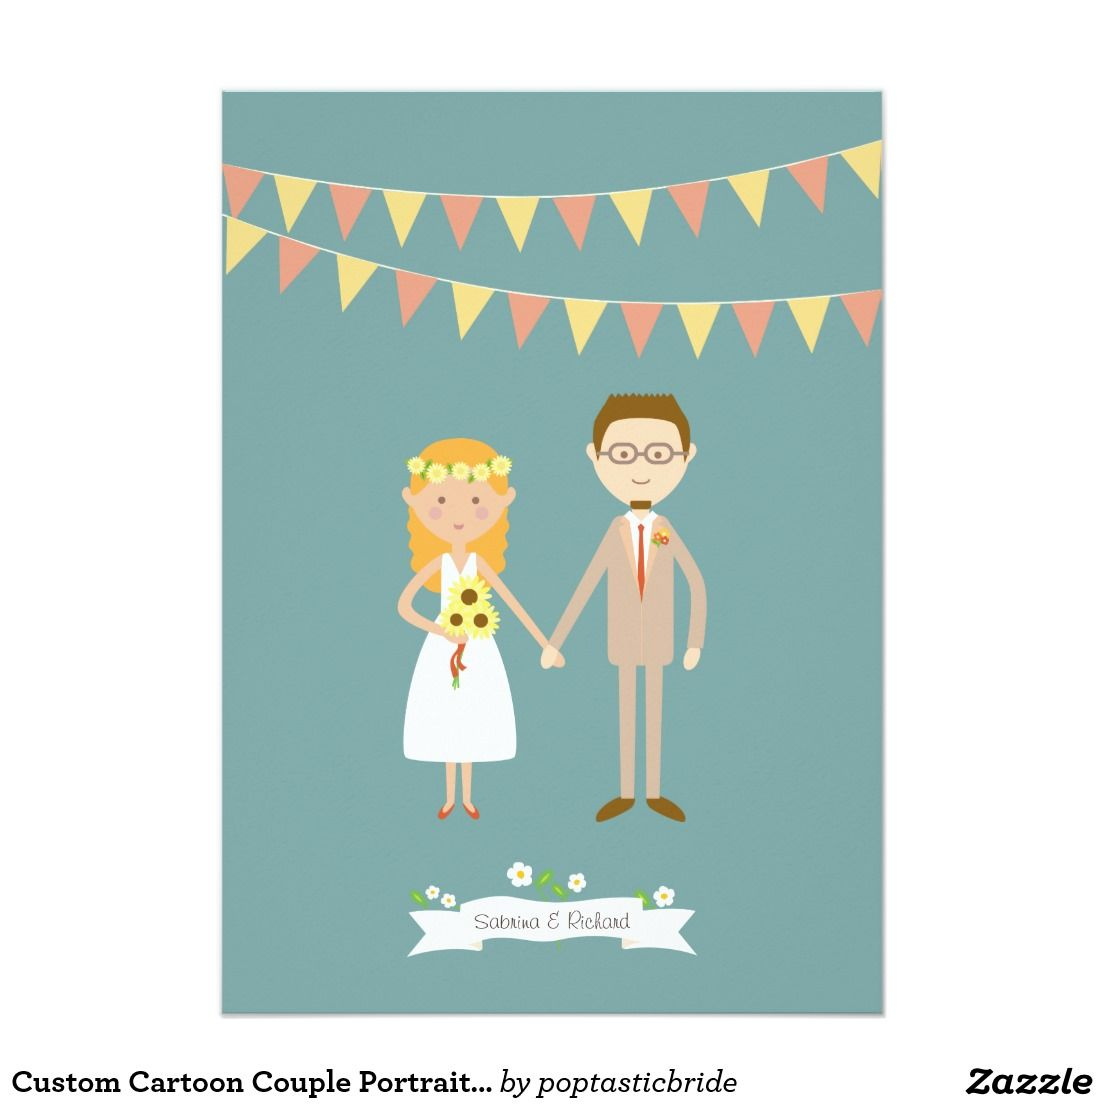 Custom Cartoon Couple Portrait Wedding Card | wedding inspiration ...